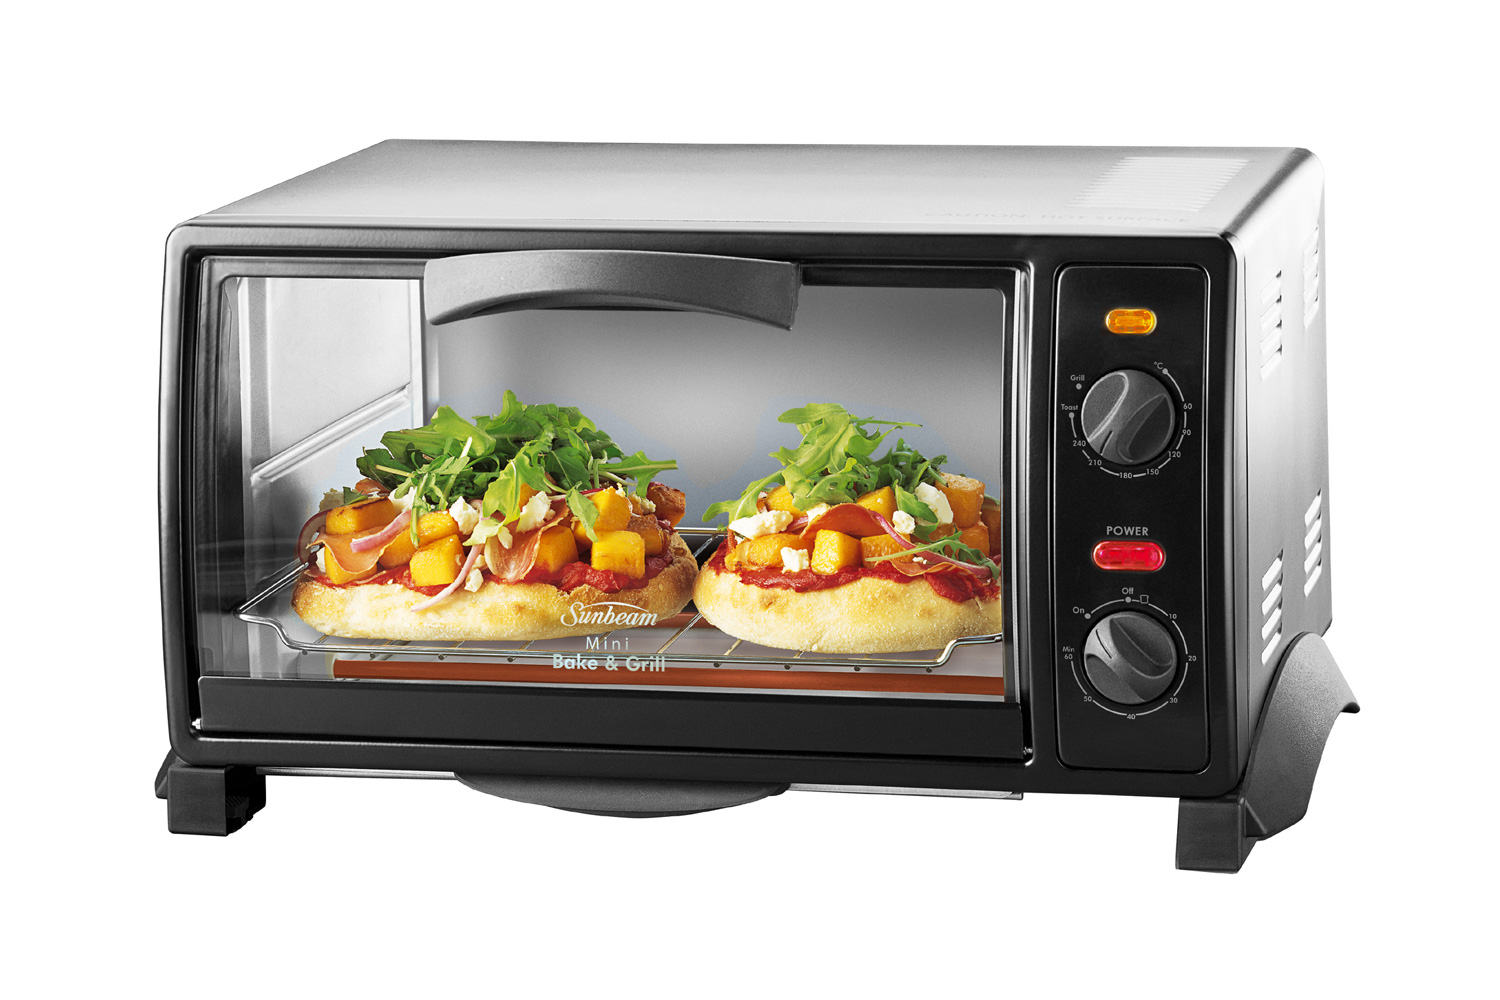 sunbeam mini bake grill oven harvey norman new zealand. Black Bedroom Furniture Sets. Home Design Ideas